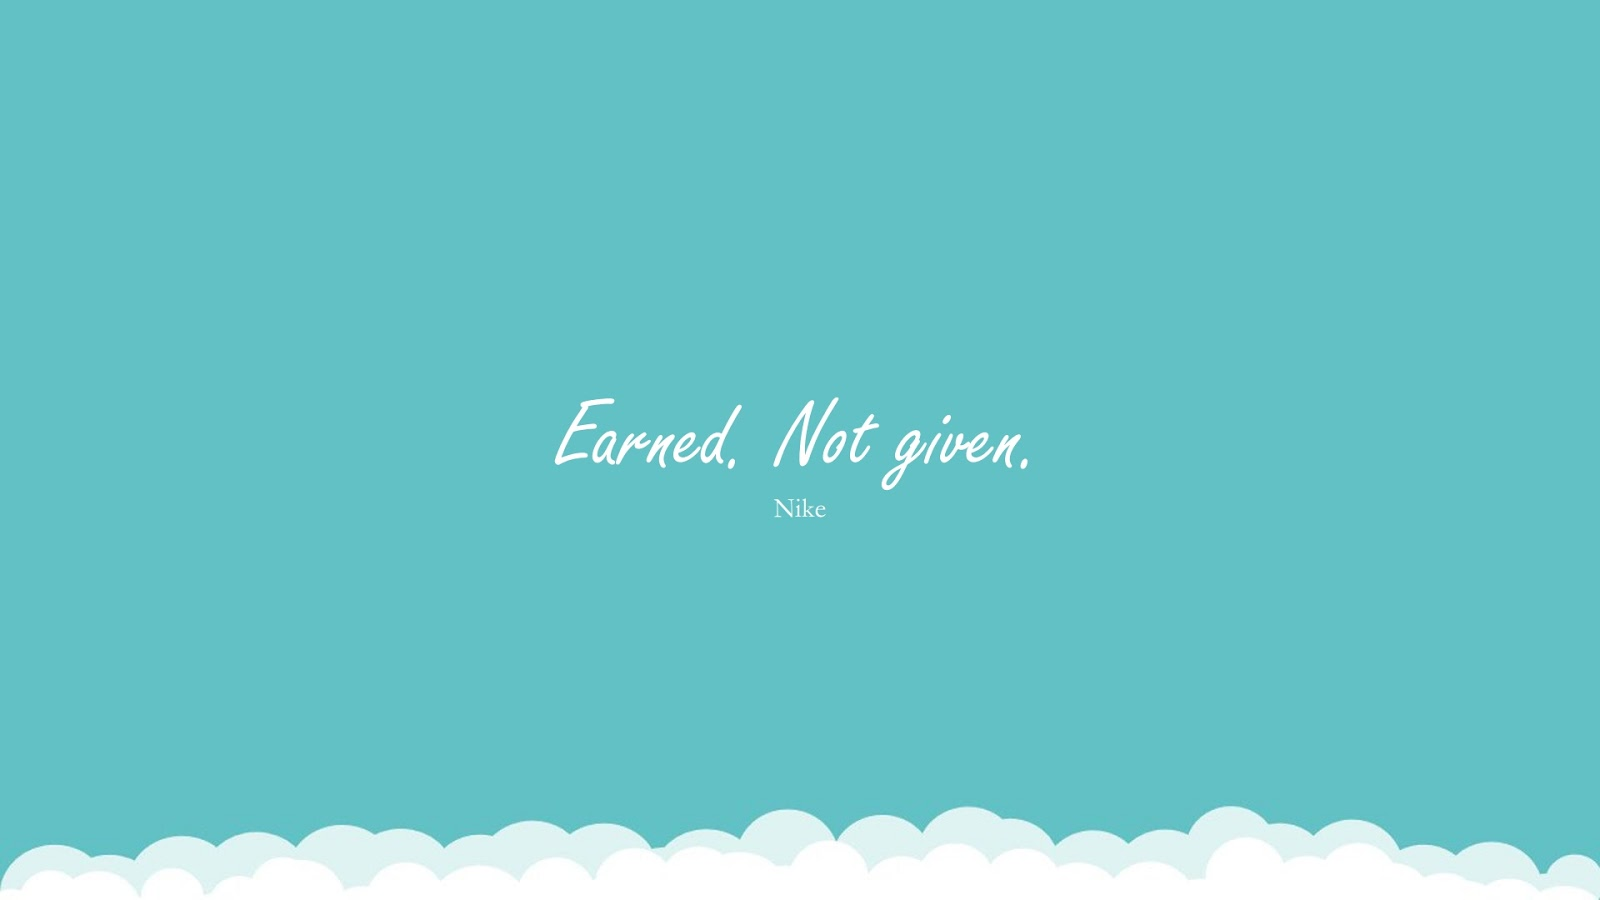 Earned. Not given. (Nike);  #HardWorkQuotes